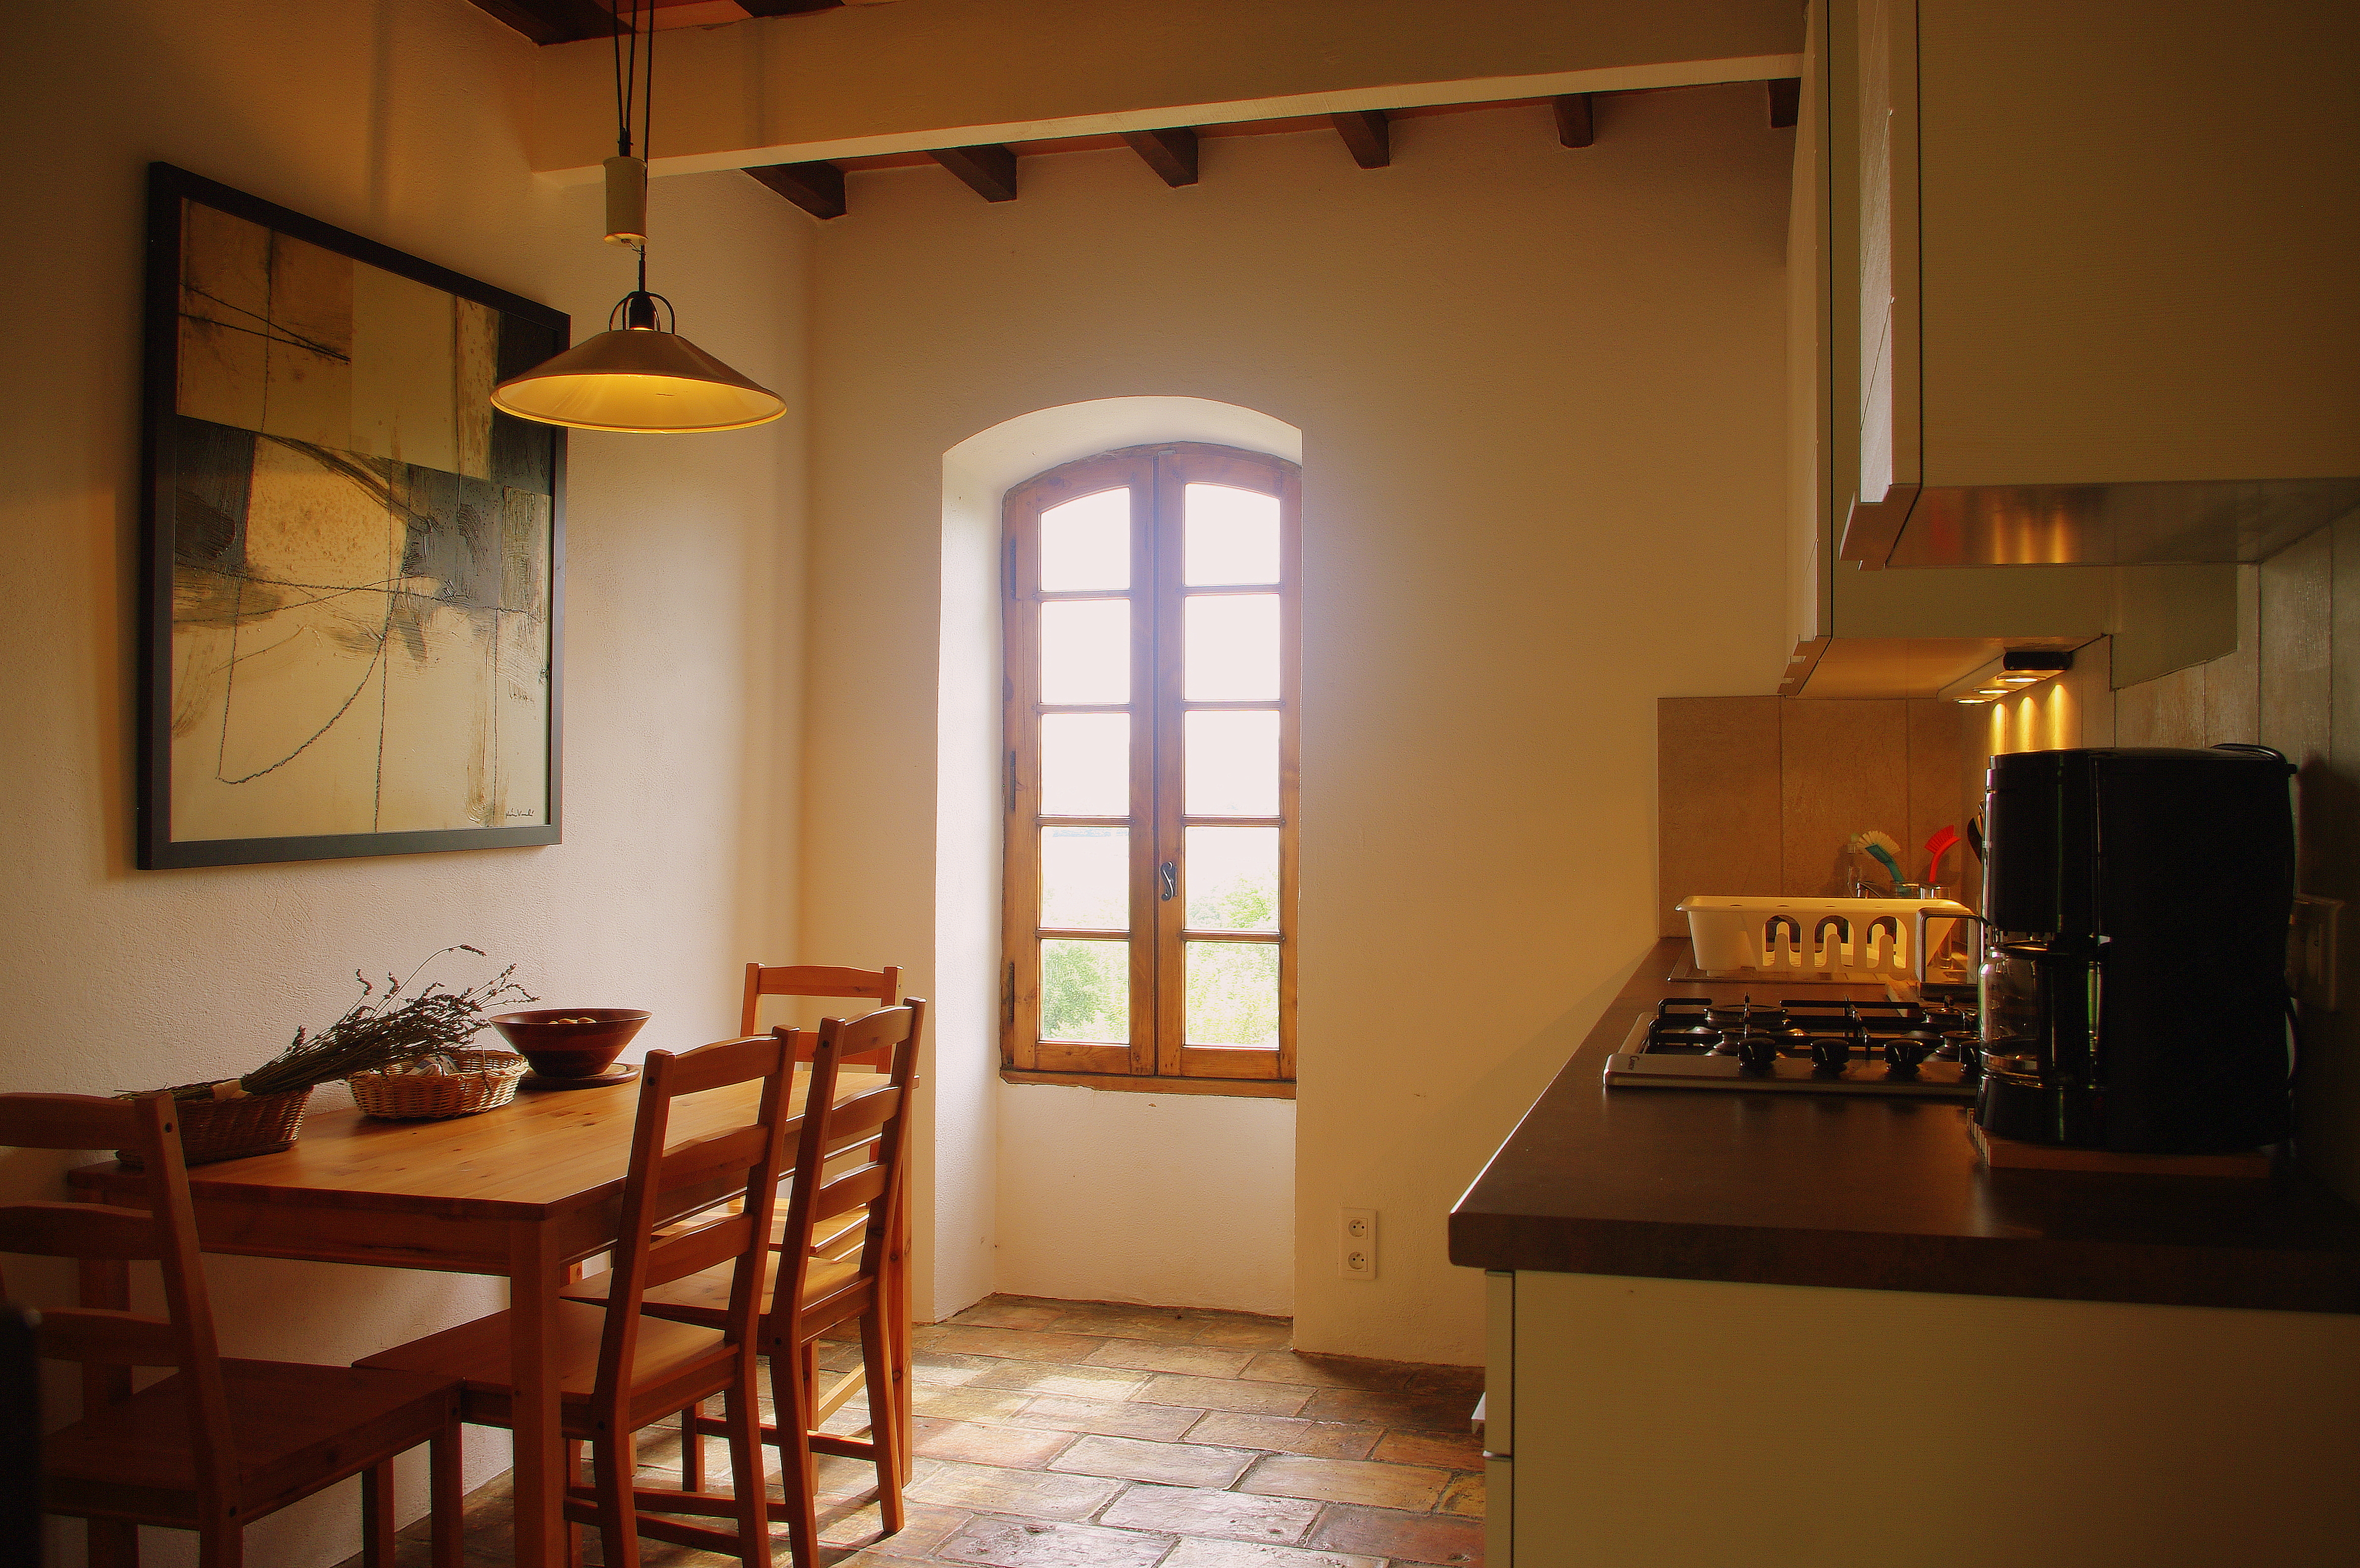 11m² old-style provencale kitchen